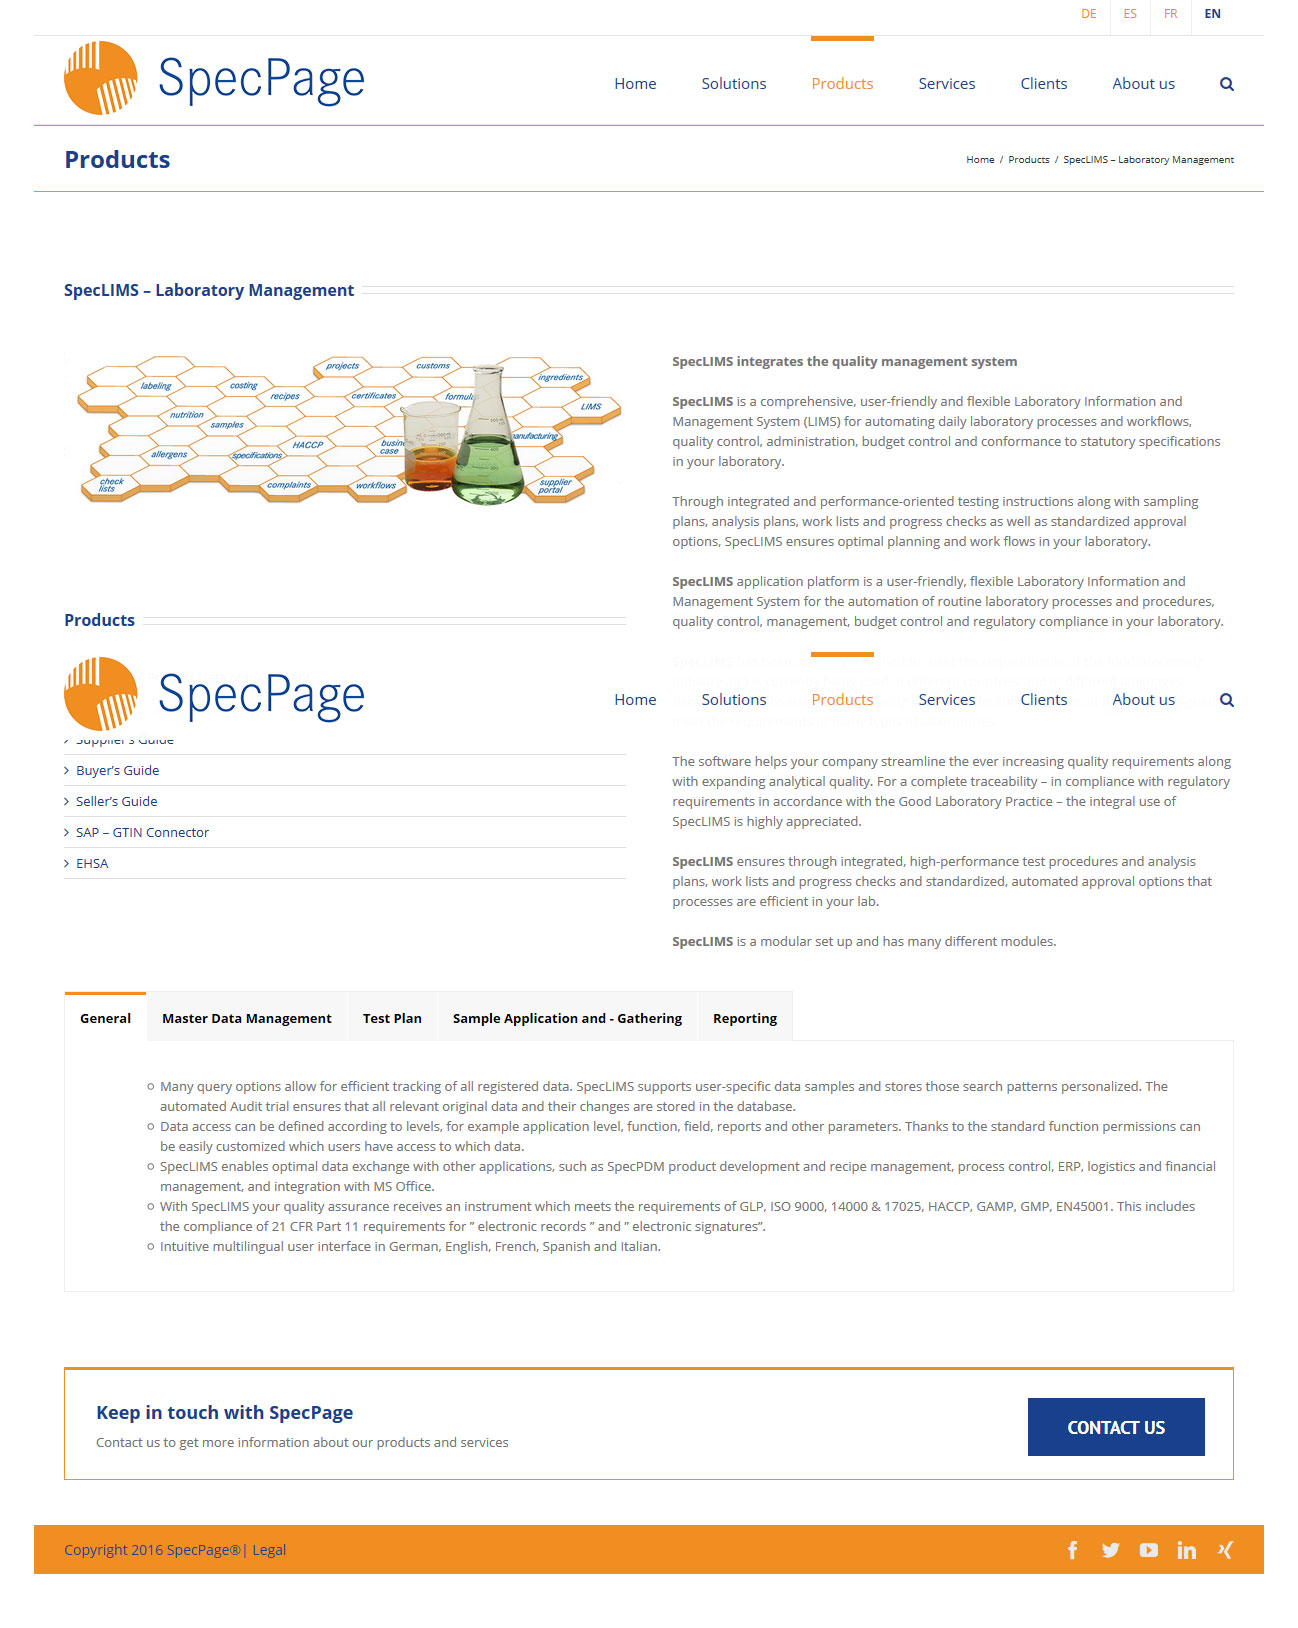 Wordpress Webdesign specpage.com